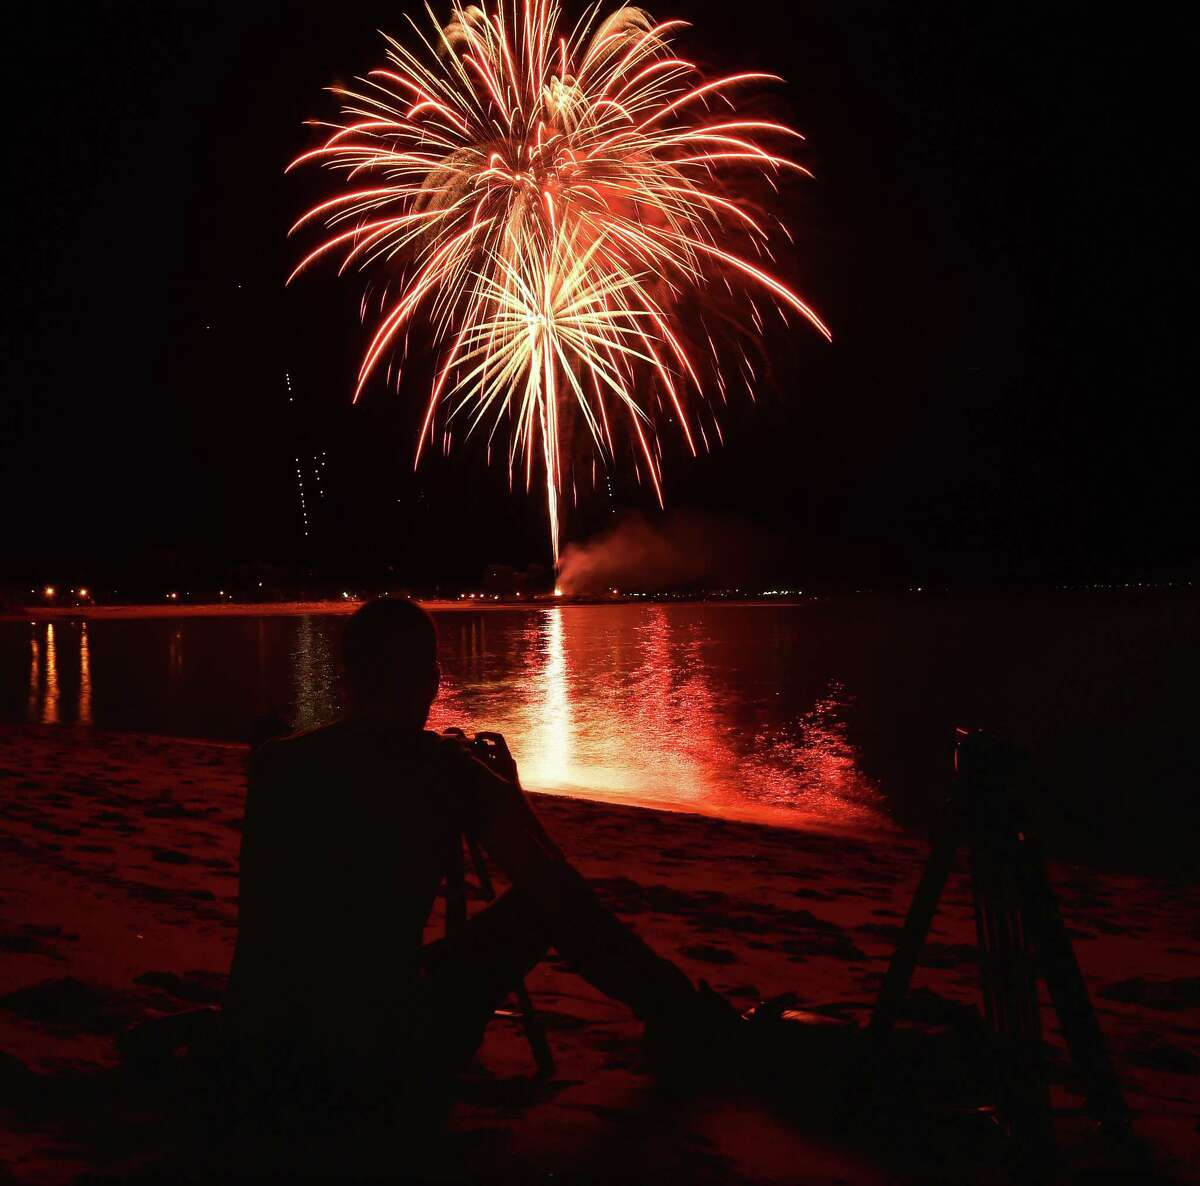 Milford resident Steven Cugini shoots stills and videos of the West Haven fireworks using a tripod on Gull Beach, Tuesday, July 5, 2016. The fireworks were postponed from last Friday, July 1, 2016, for inclement weather. (Catherine Avalone/New Haven Register / Hearst Connecticut Media